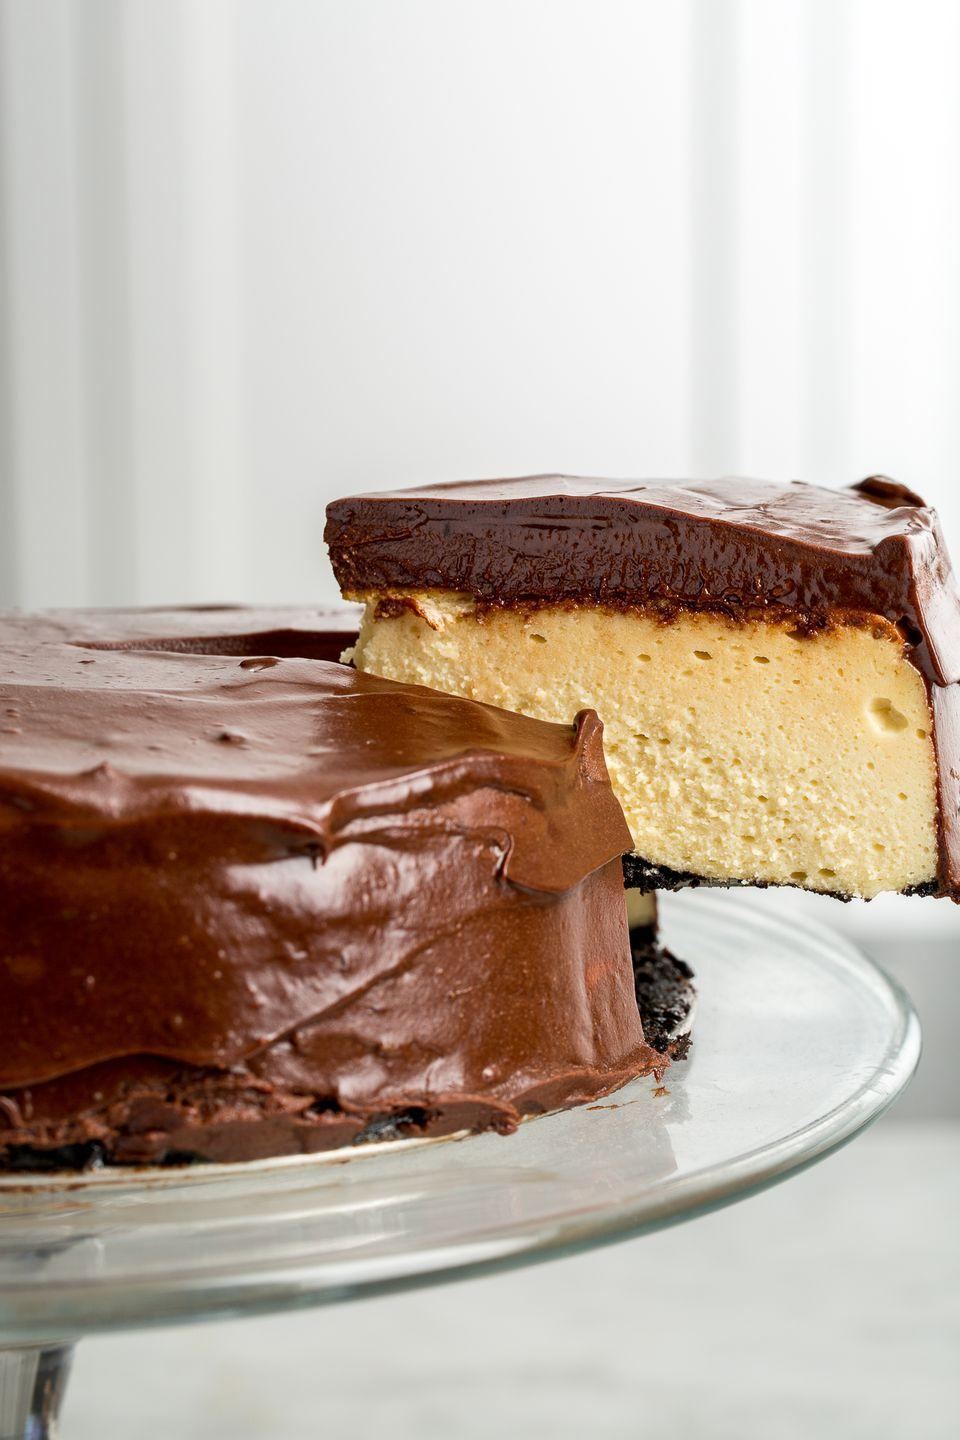 """<p>This fudgy cheesecake deserves to be eaten way beyond St. Patty's Day.</p><p>Get the recipe from <a href=""""https://www.delish.com/cooking/recipe-ideas/recipes/a46303/baileys-cheesecake-recipe/"""" rel=""""nofollow noopener"""" target=""""_blank"""" data-ylk=""""slk:Delish"""" class=""""link rapid-noclick-resp"""">Delish</a>.</p>"""